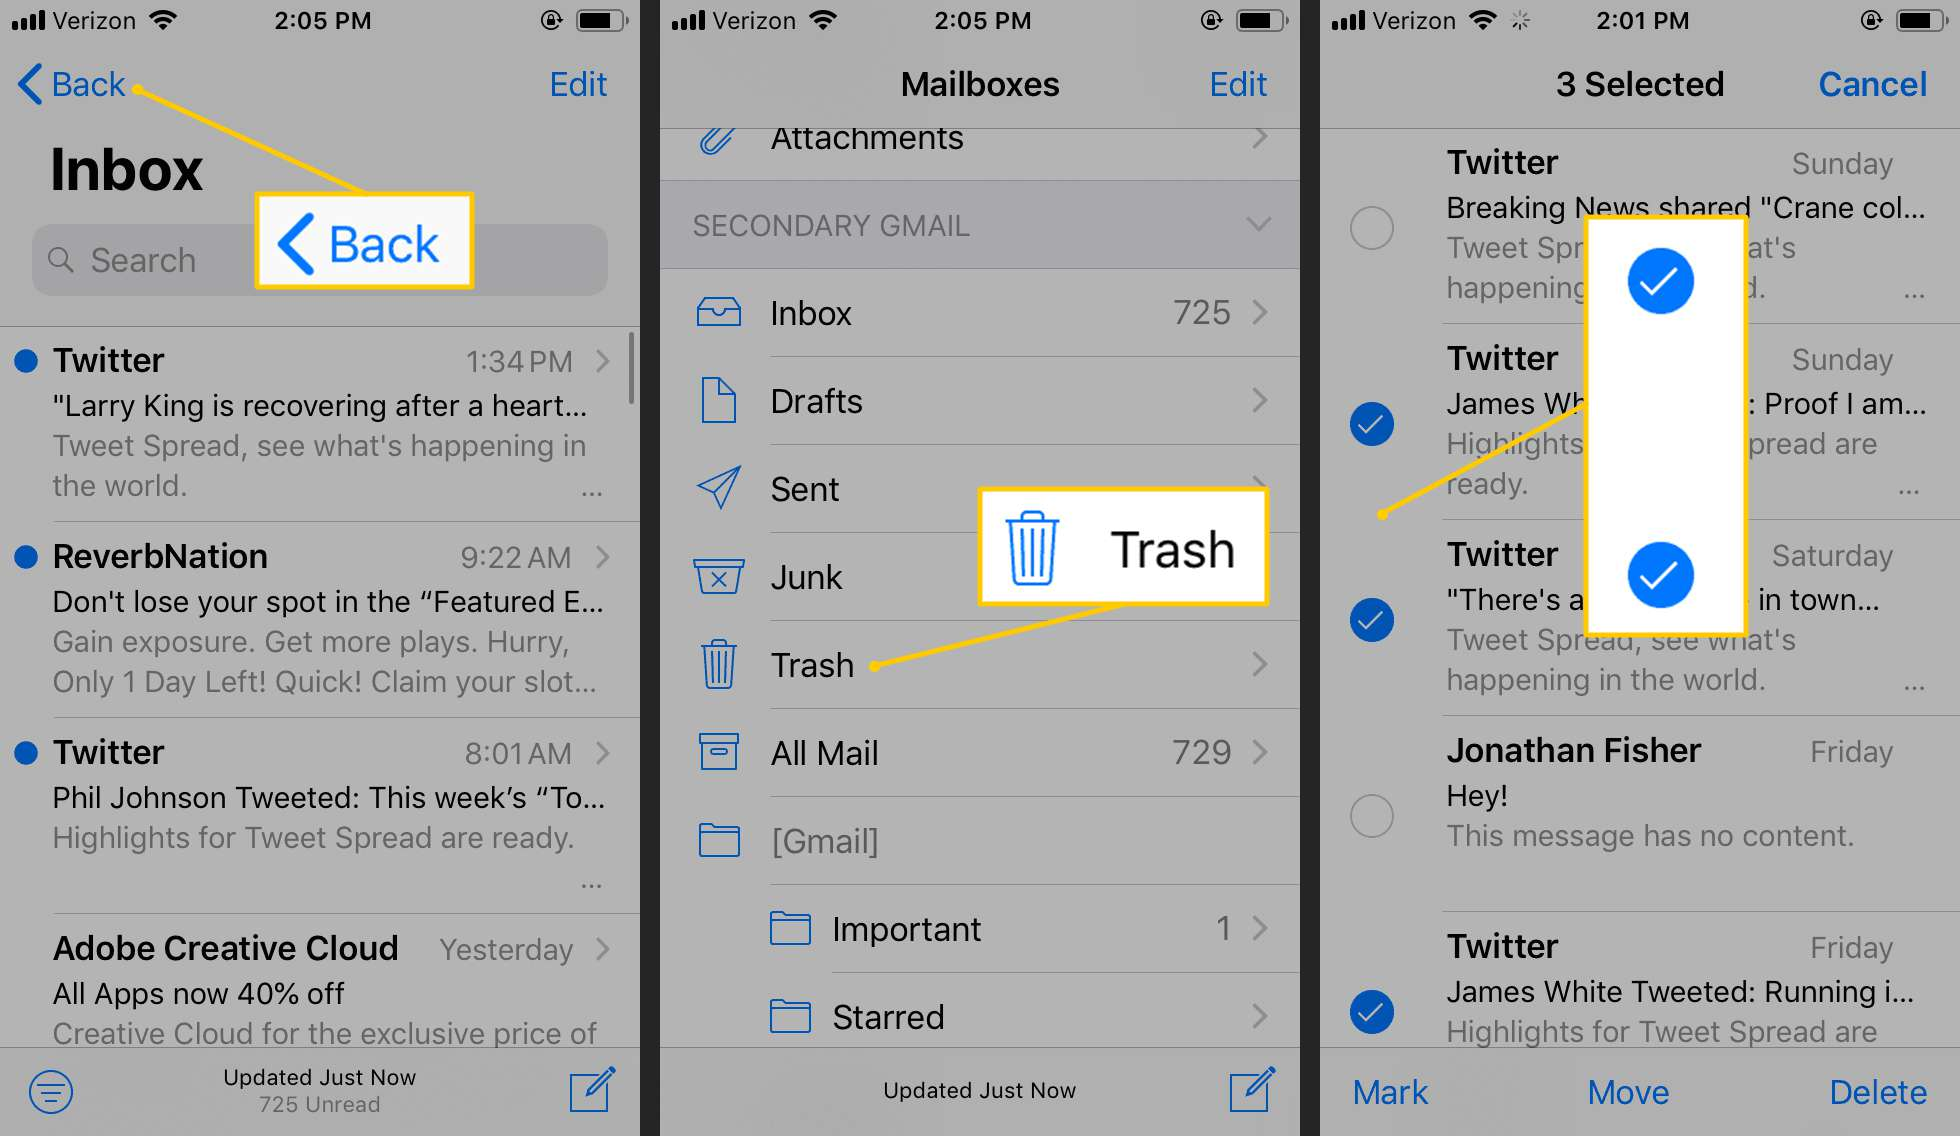 How to Delete Deleted Emails From Your iPhone